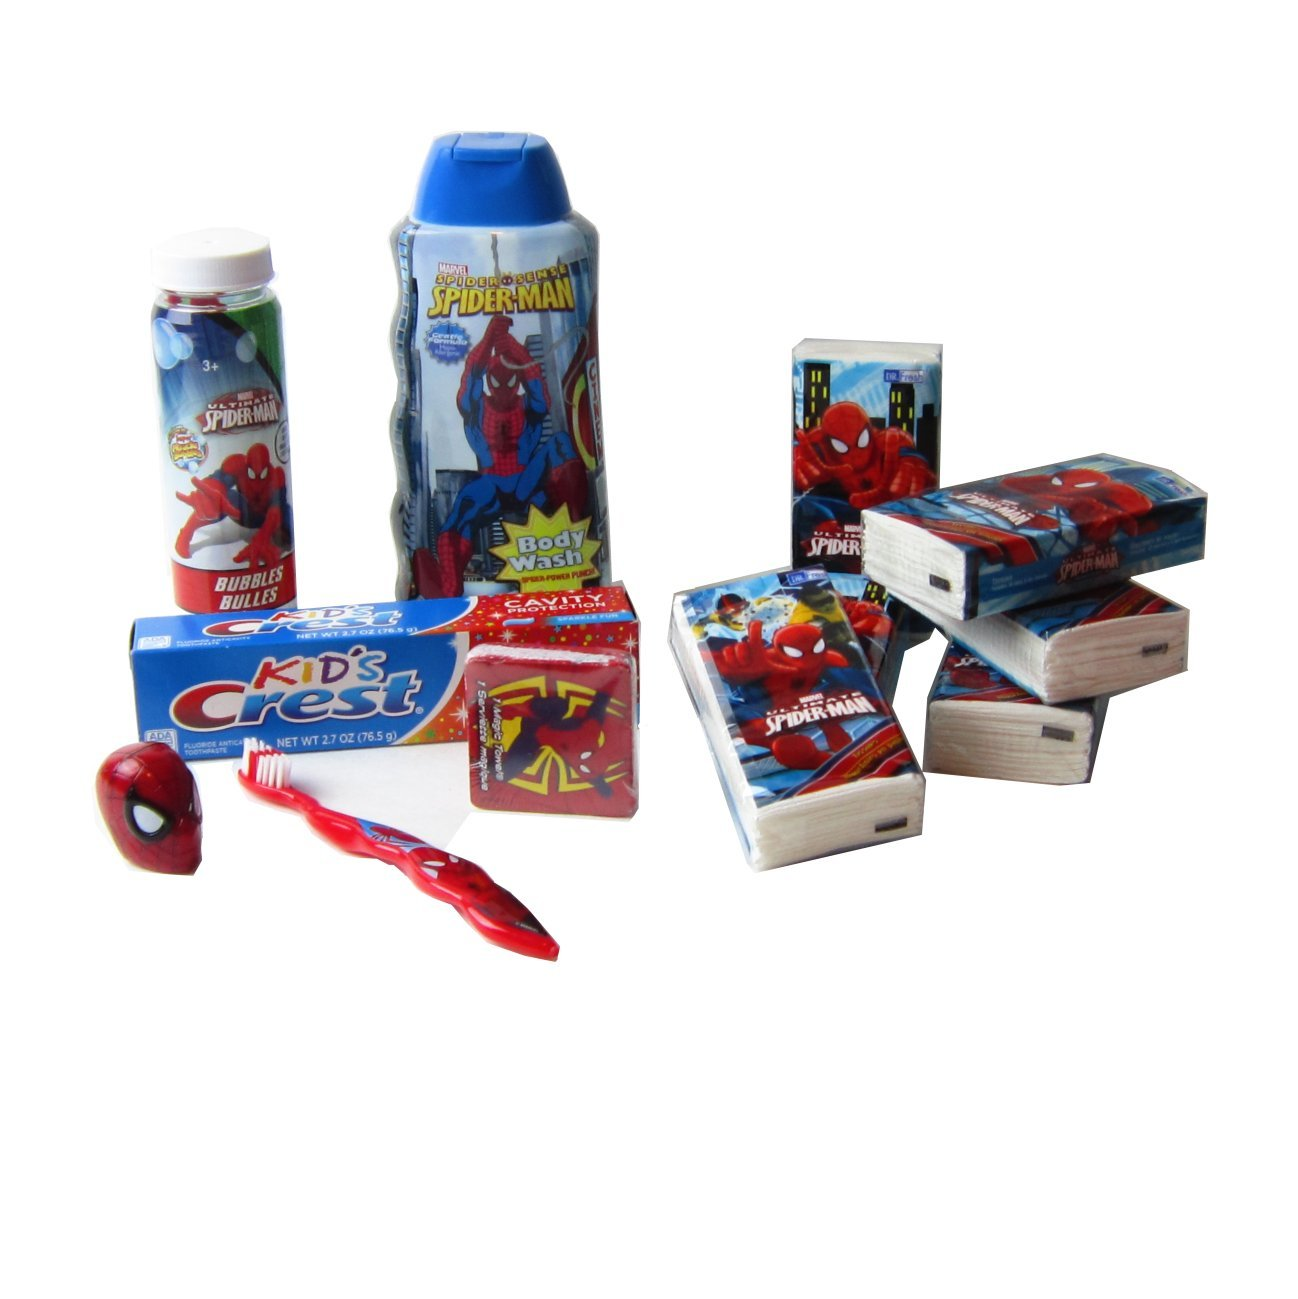 Amazon.com: Spiderman Bath Set Spiderman Personal Bath Accessories ...